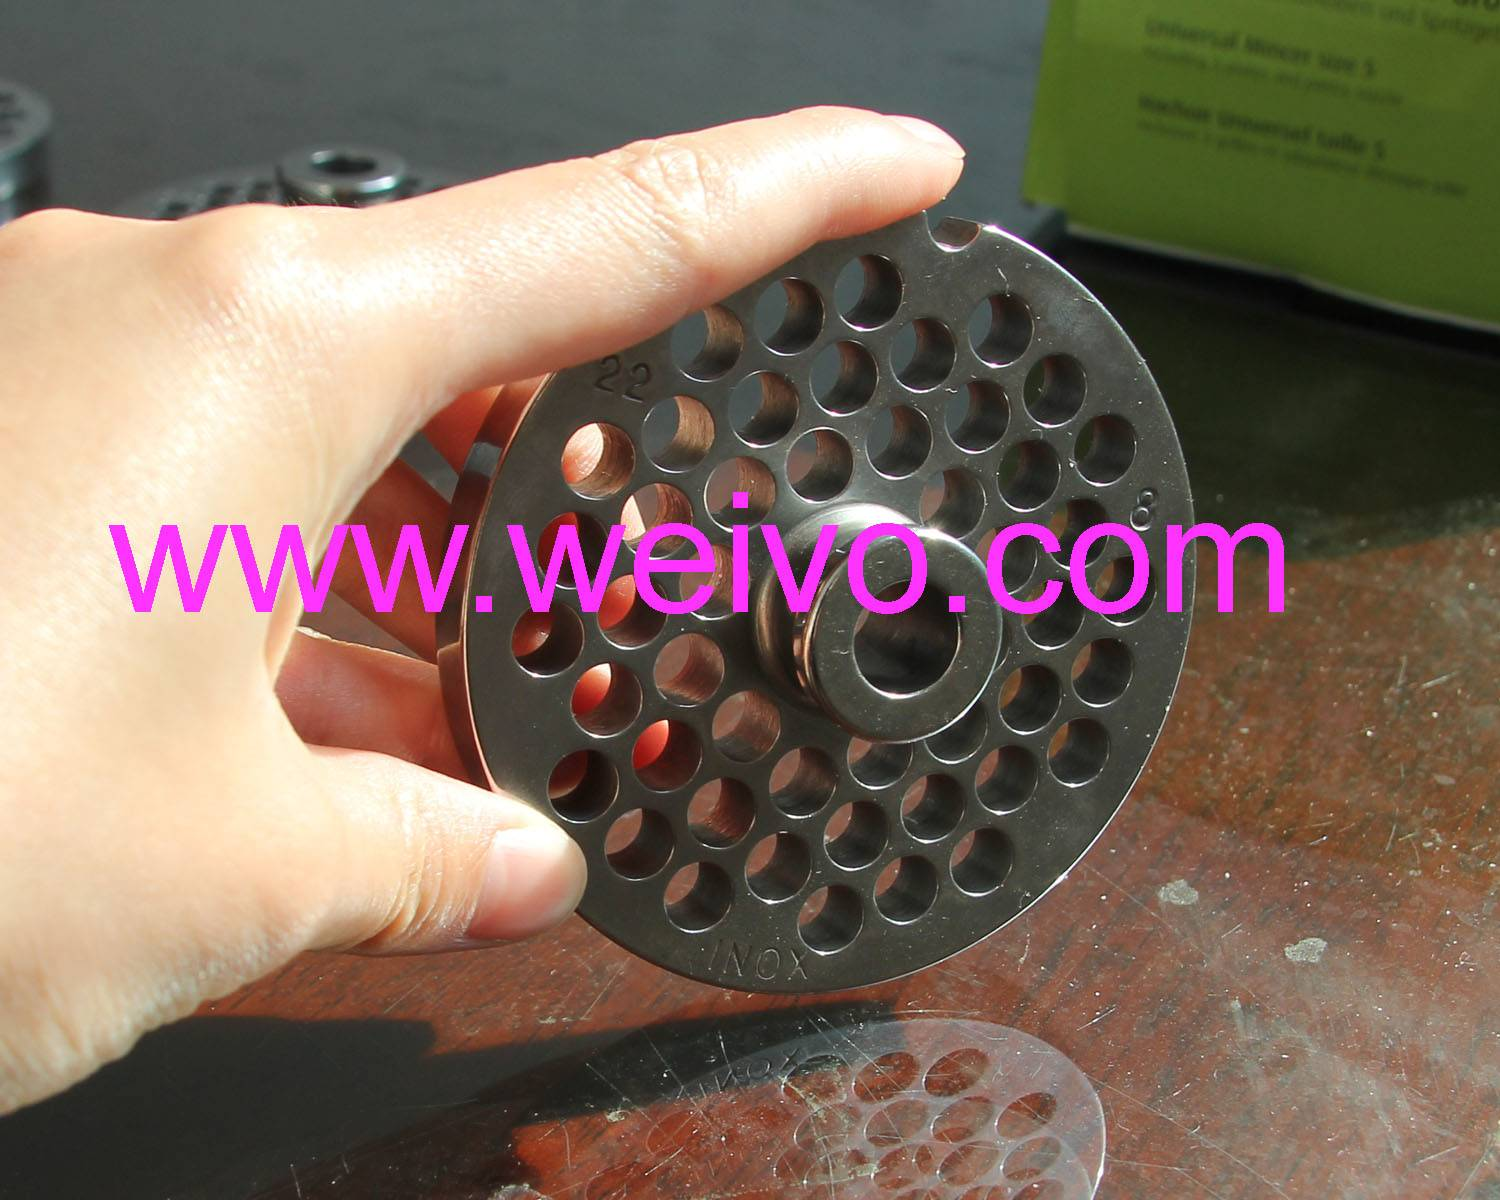 No.22/ 8mm Meat Mincer parts/ Meat grinder Blades/ Meat Chopper cutting Plates